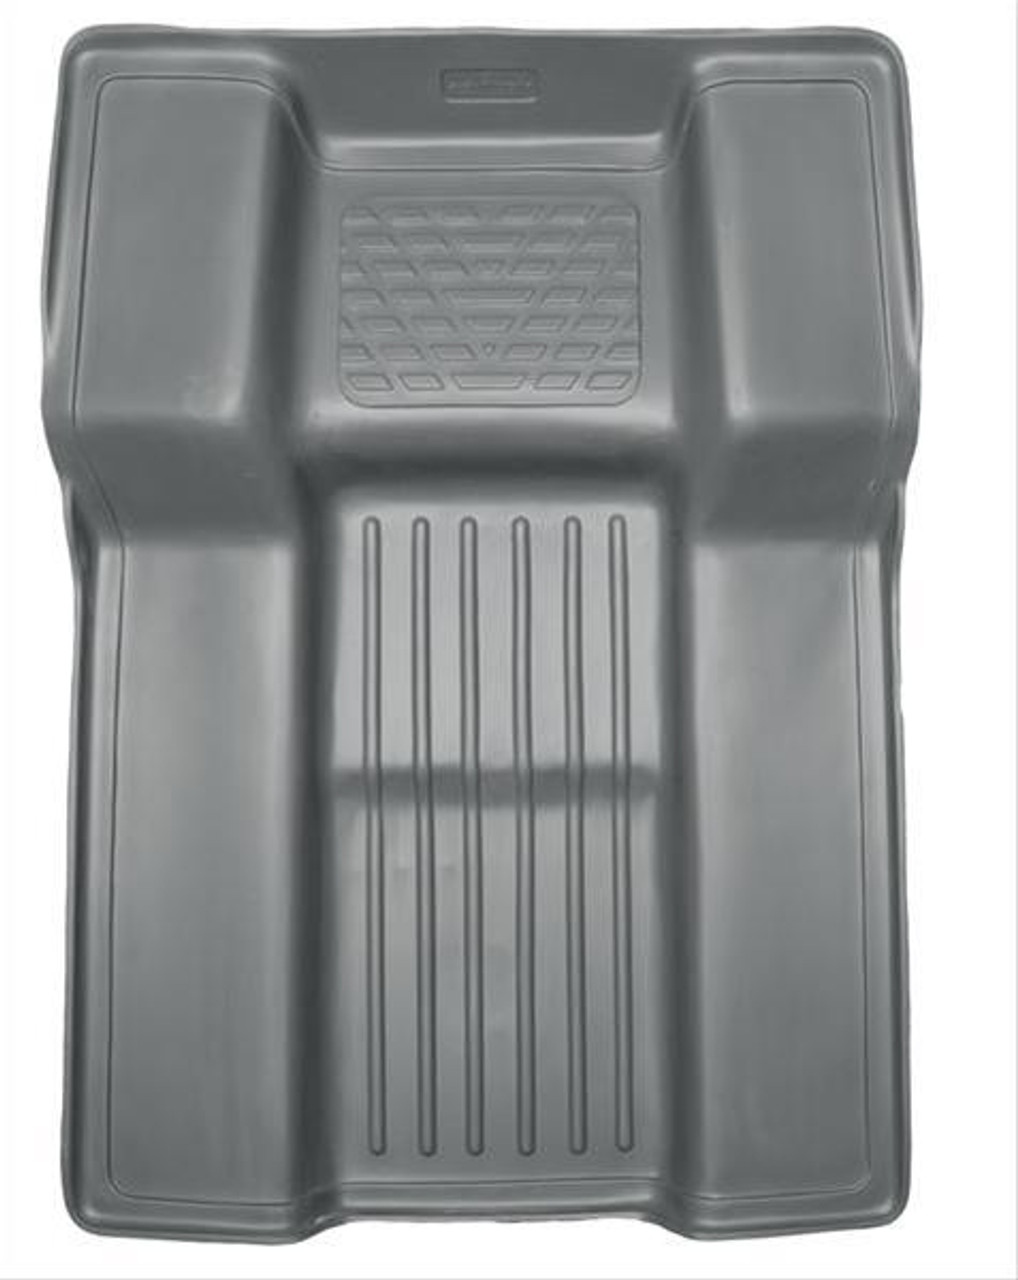 07-10 ESCALADE/TAHOE/YUKON WALKWAY BETWEEN 2ND ROW BUCKET SEATS WEATHERBEATER SERIES GREY